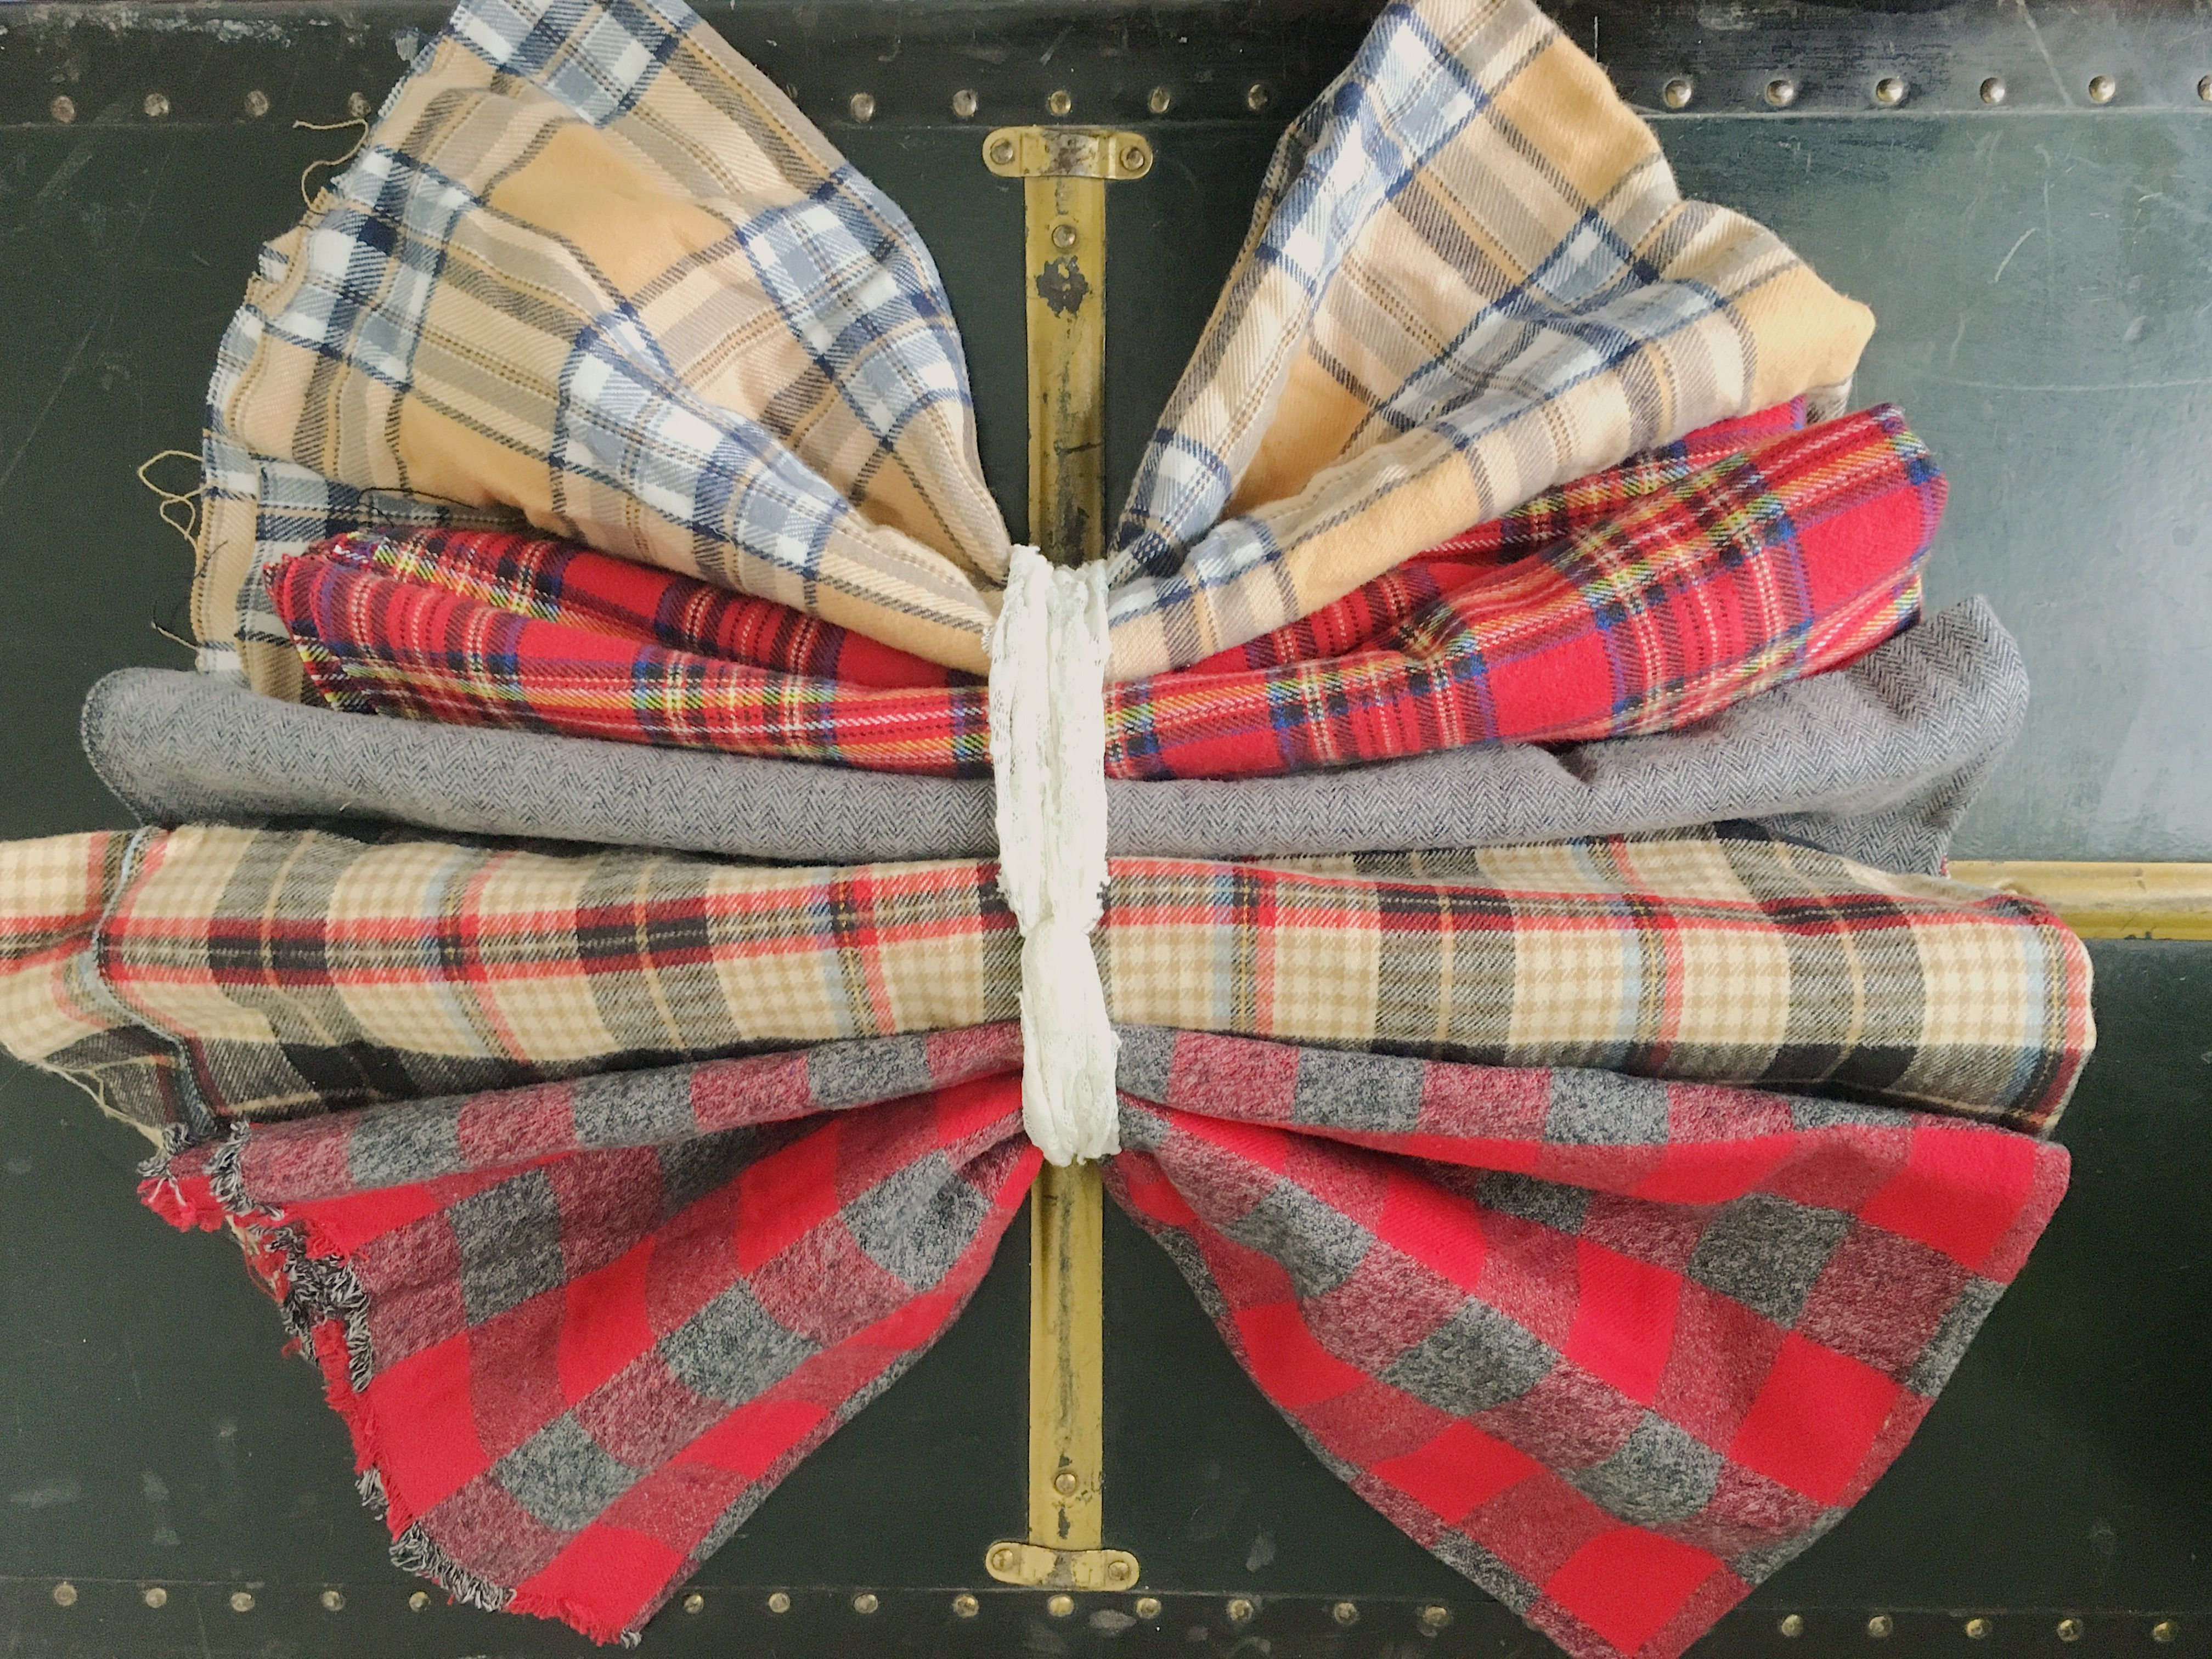 Red flannel fabric  Flannel fabric for baby headbands In love with the idea of flannel